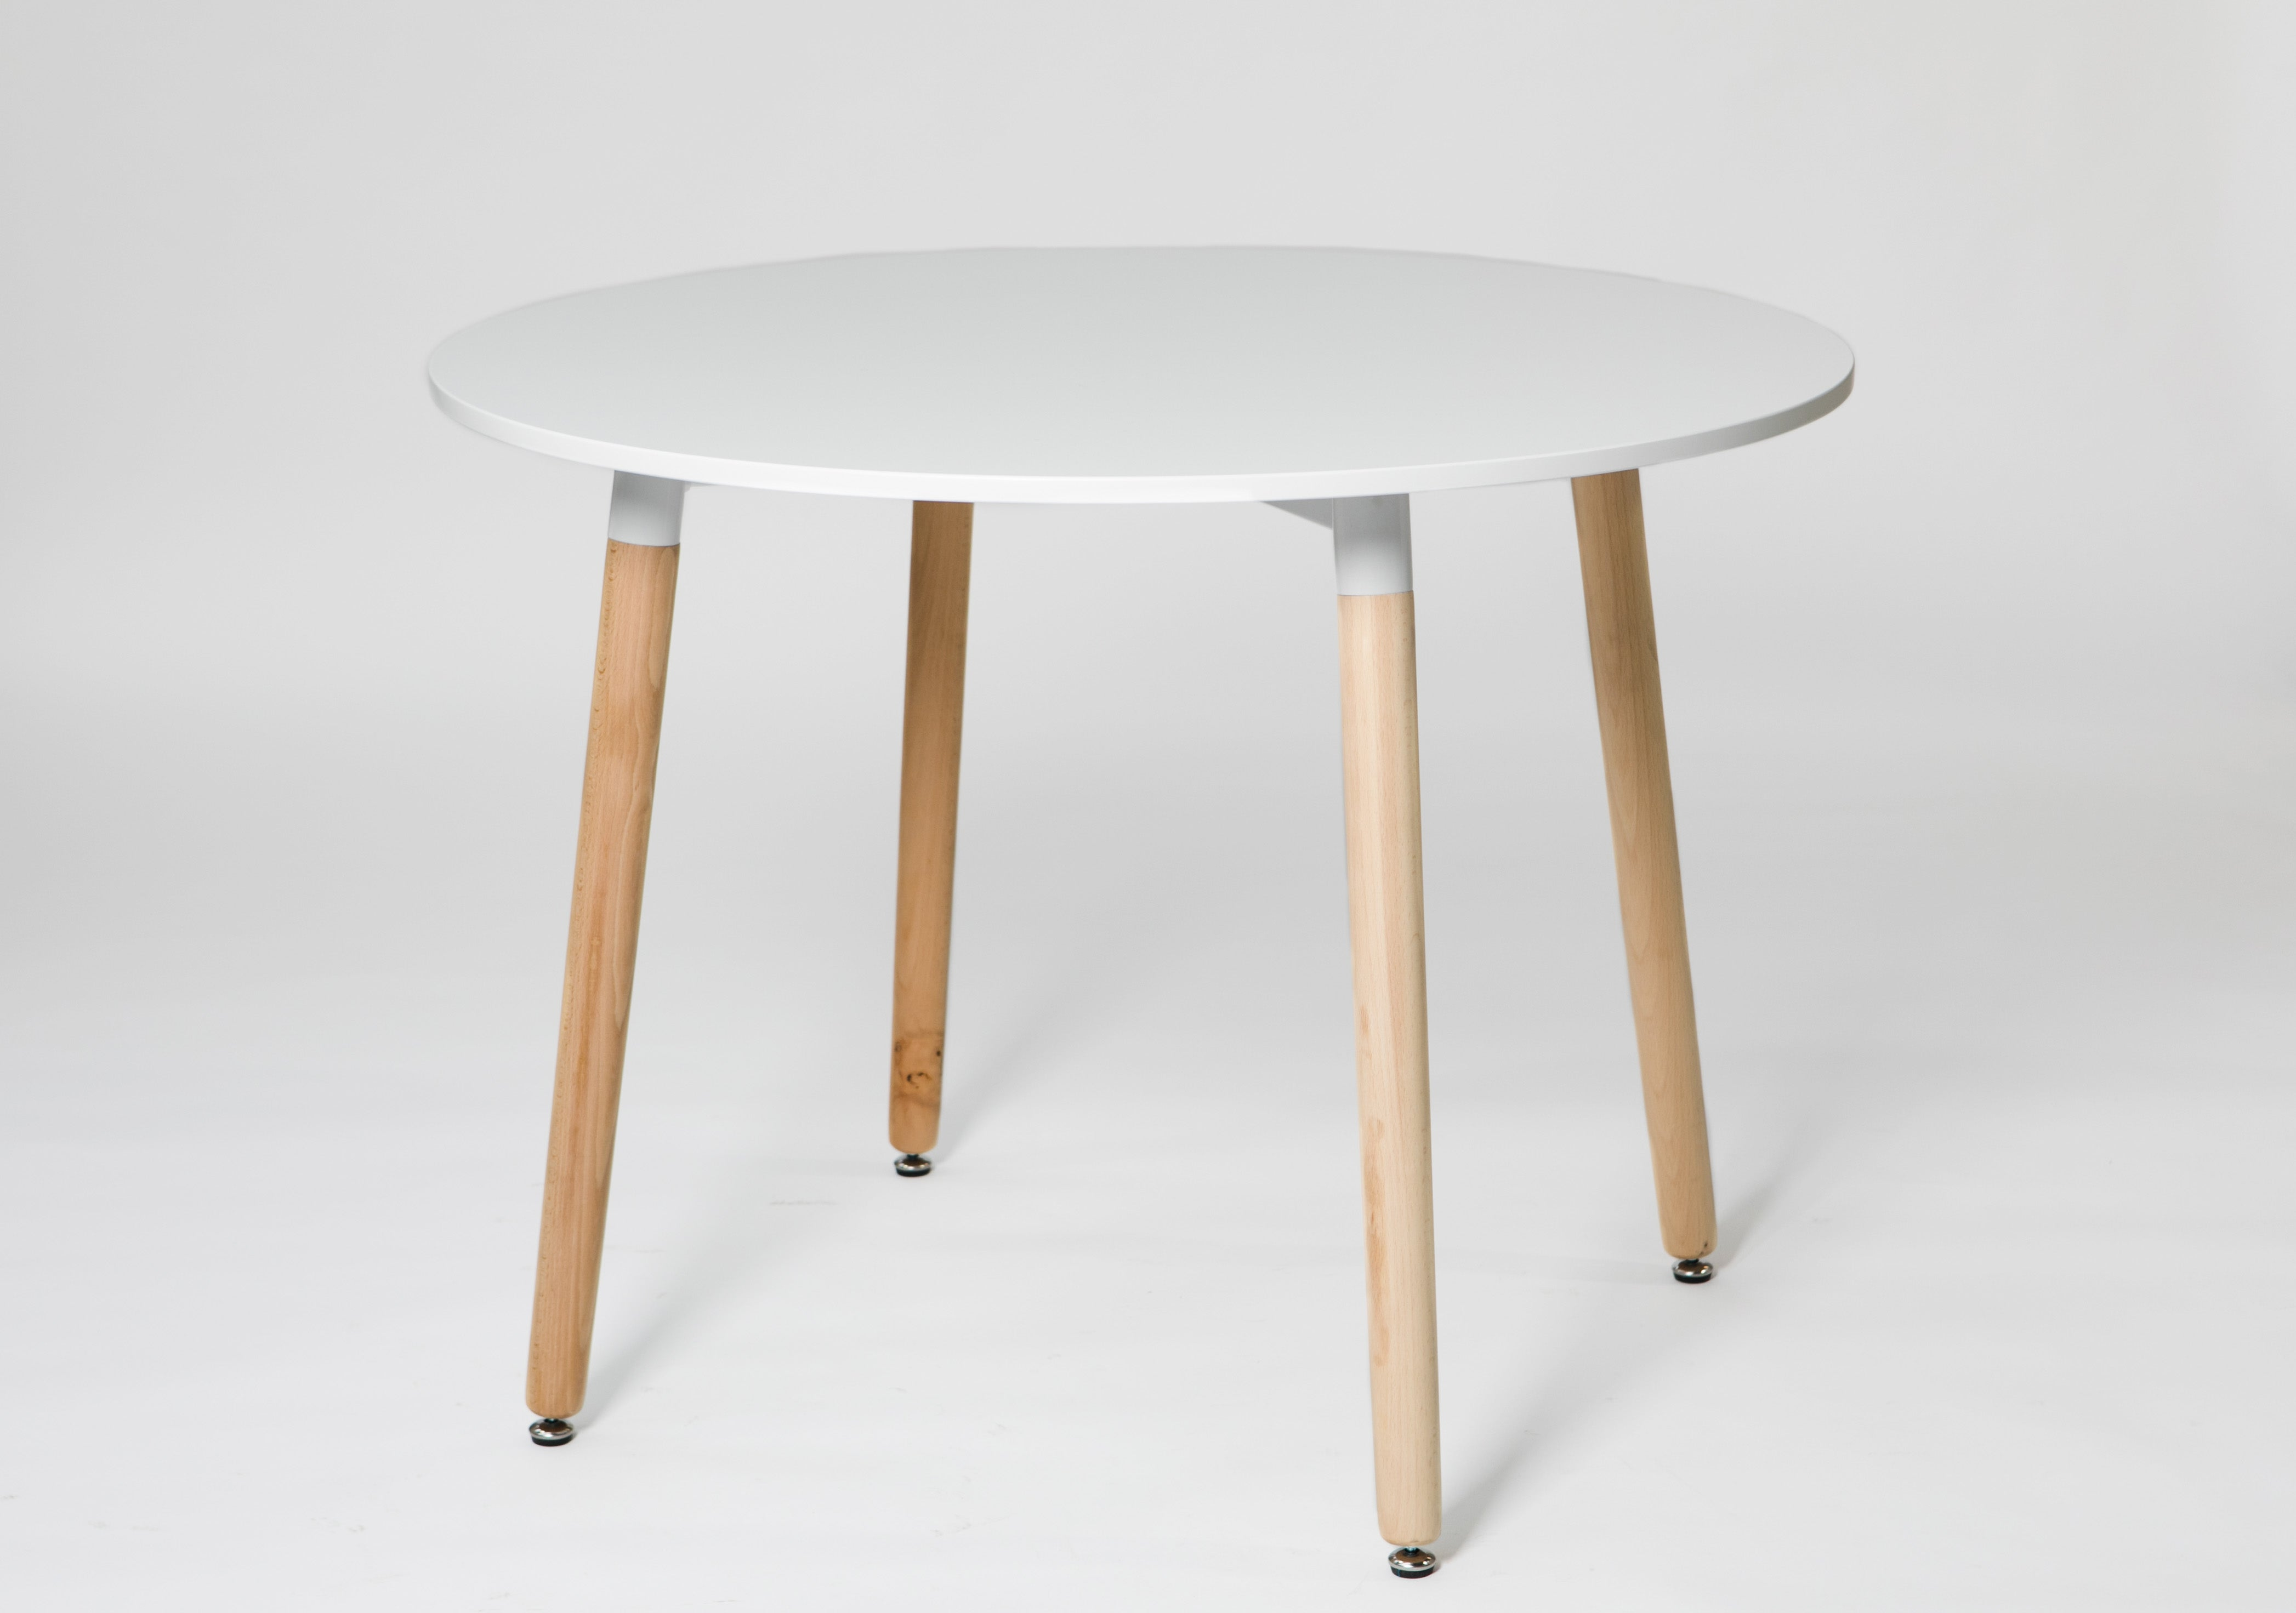 Urban kitchen dining table